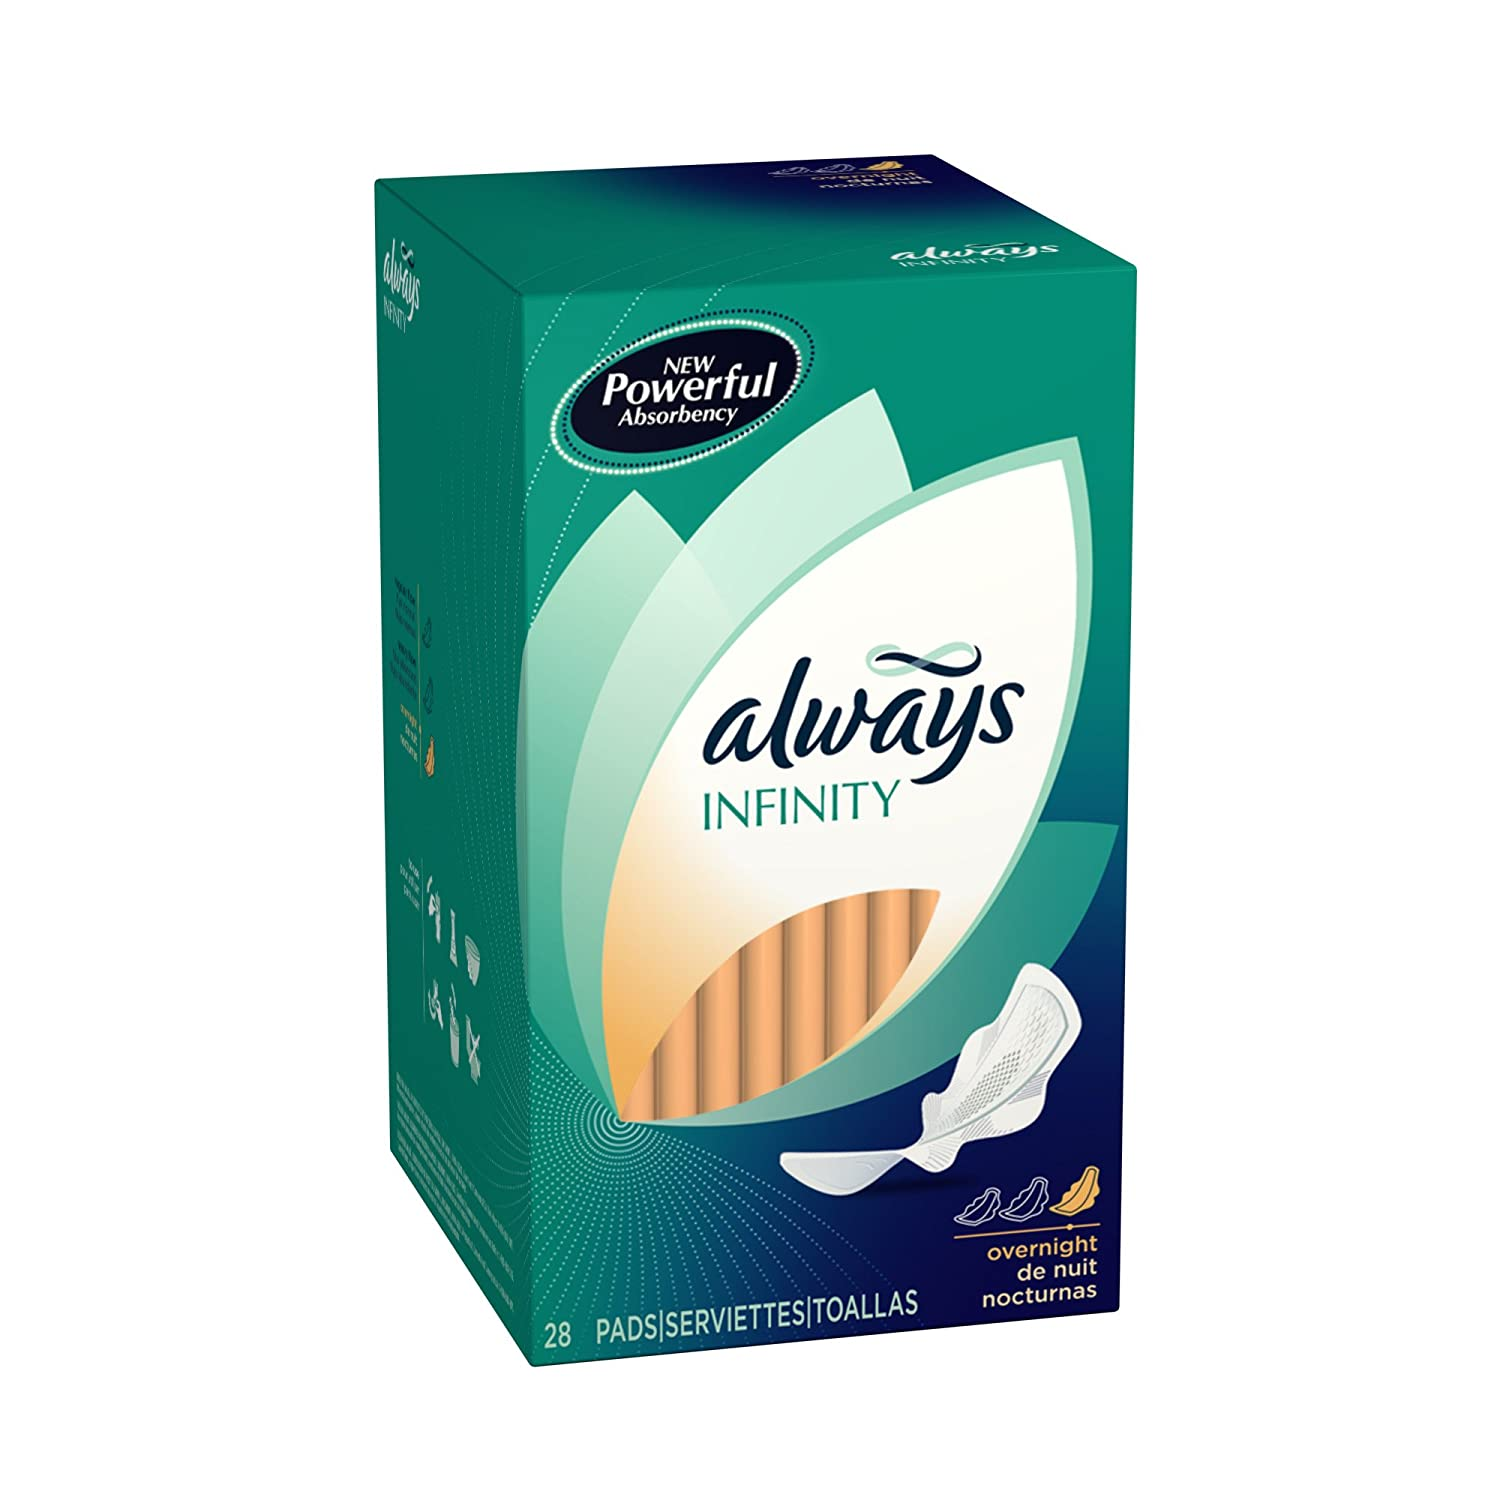 Amazon.com: Always Infinity, 28-count Boxes (Pack of 6): Health & Personal Care